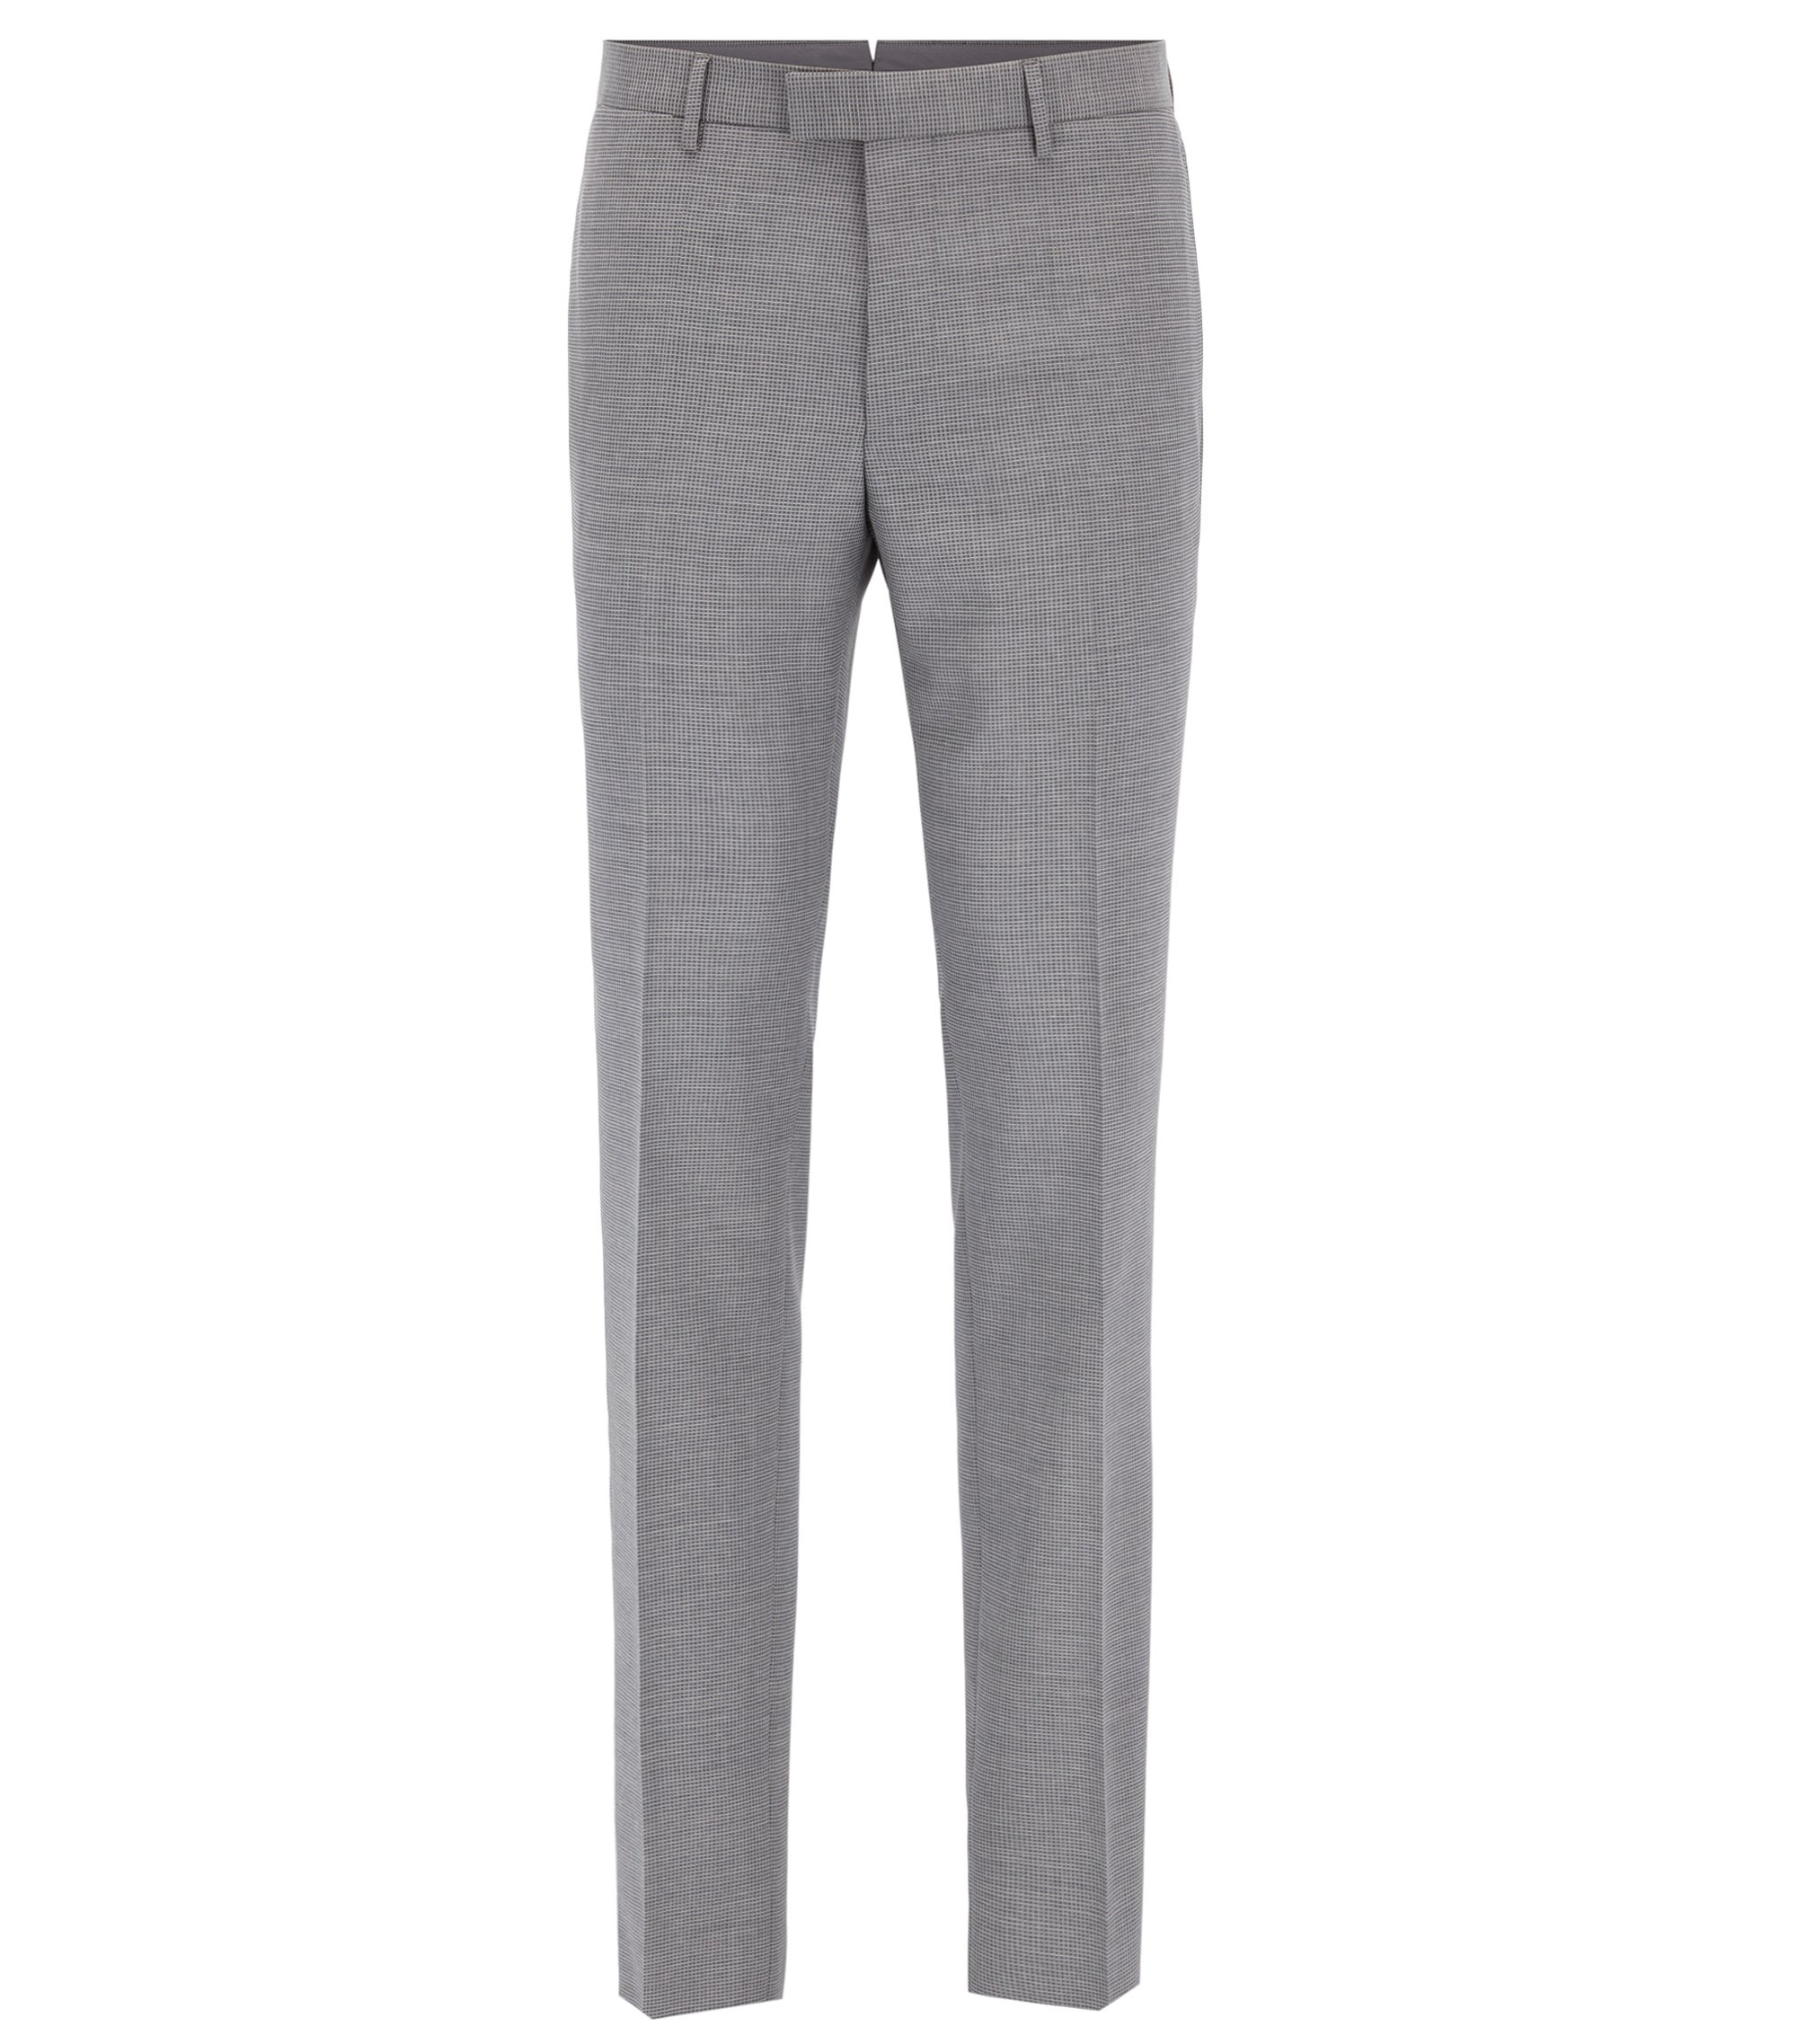 Virgin Wool Dress Pants, Slim Fit | T-Gary, Grey